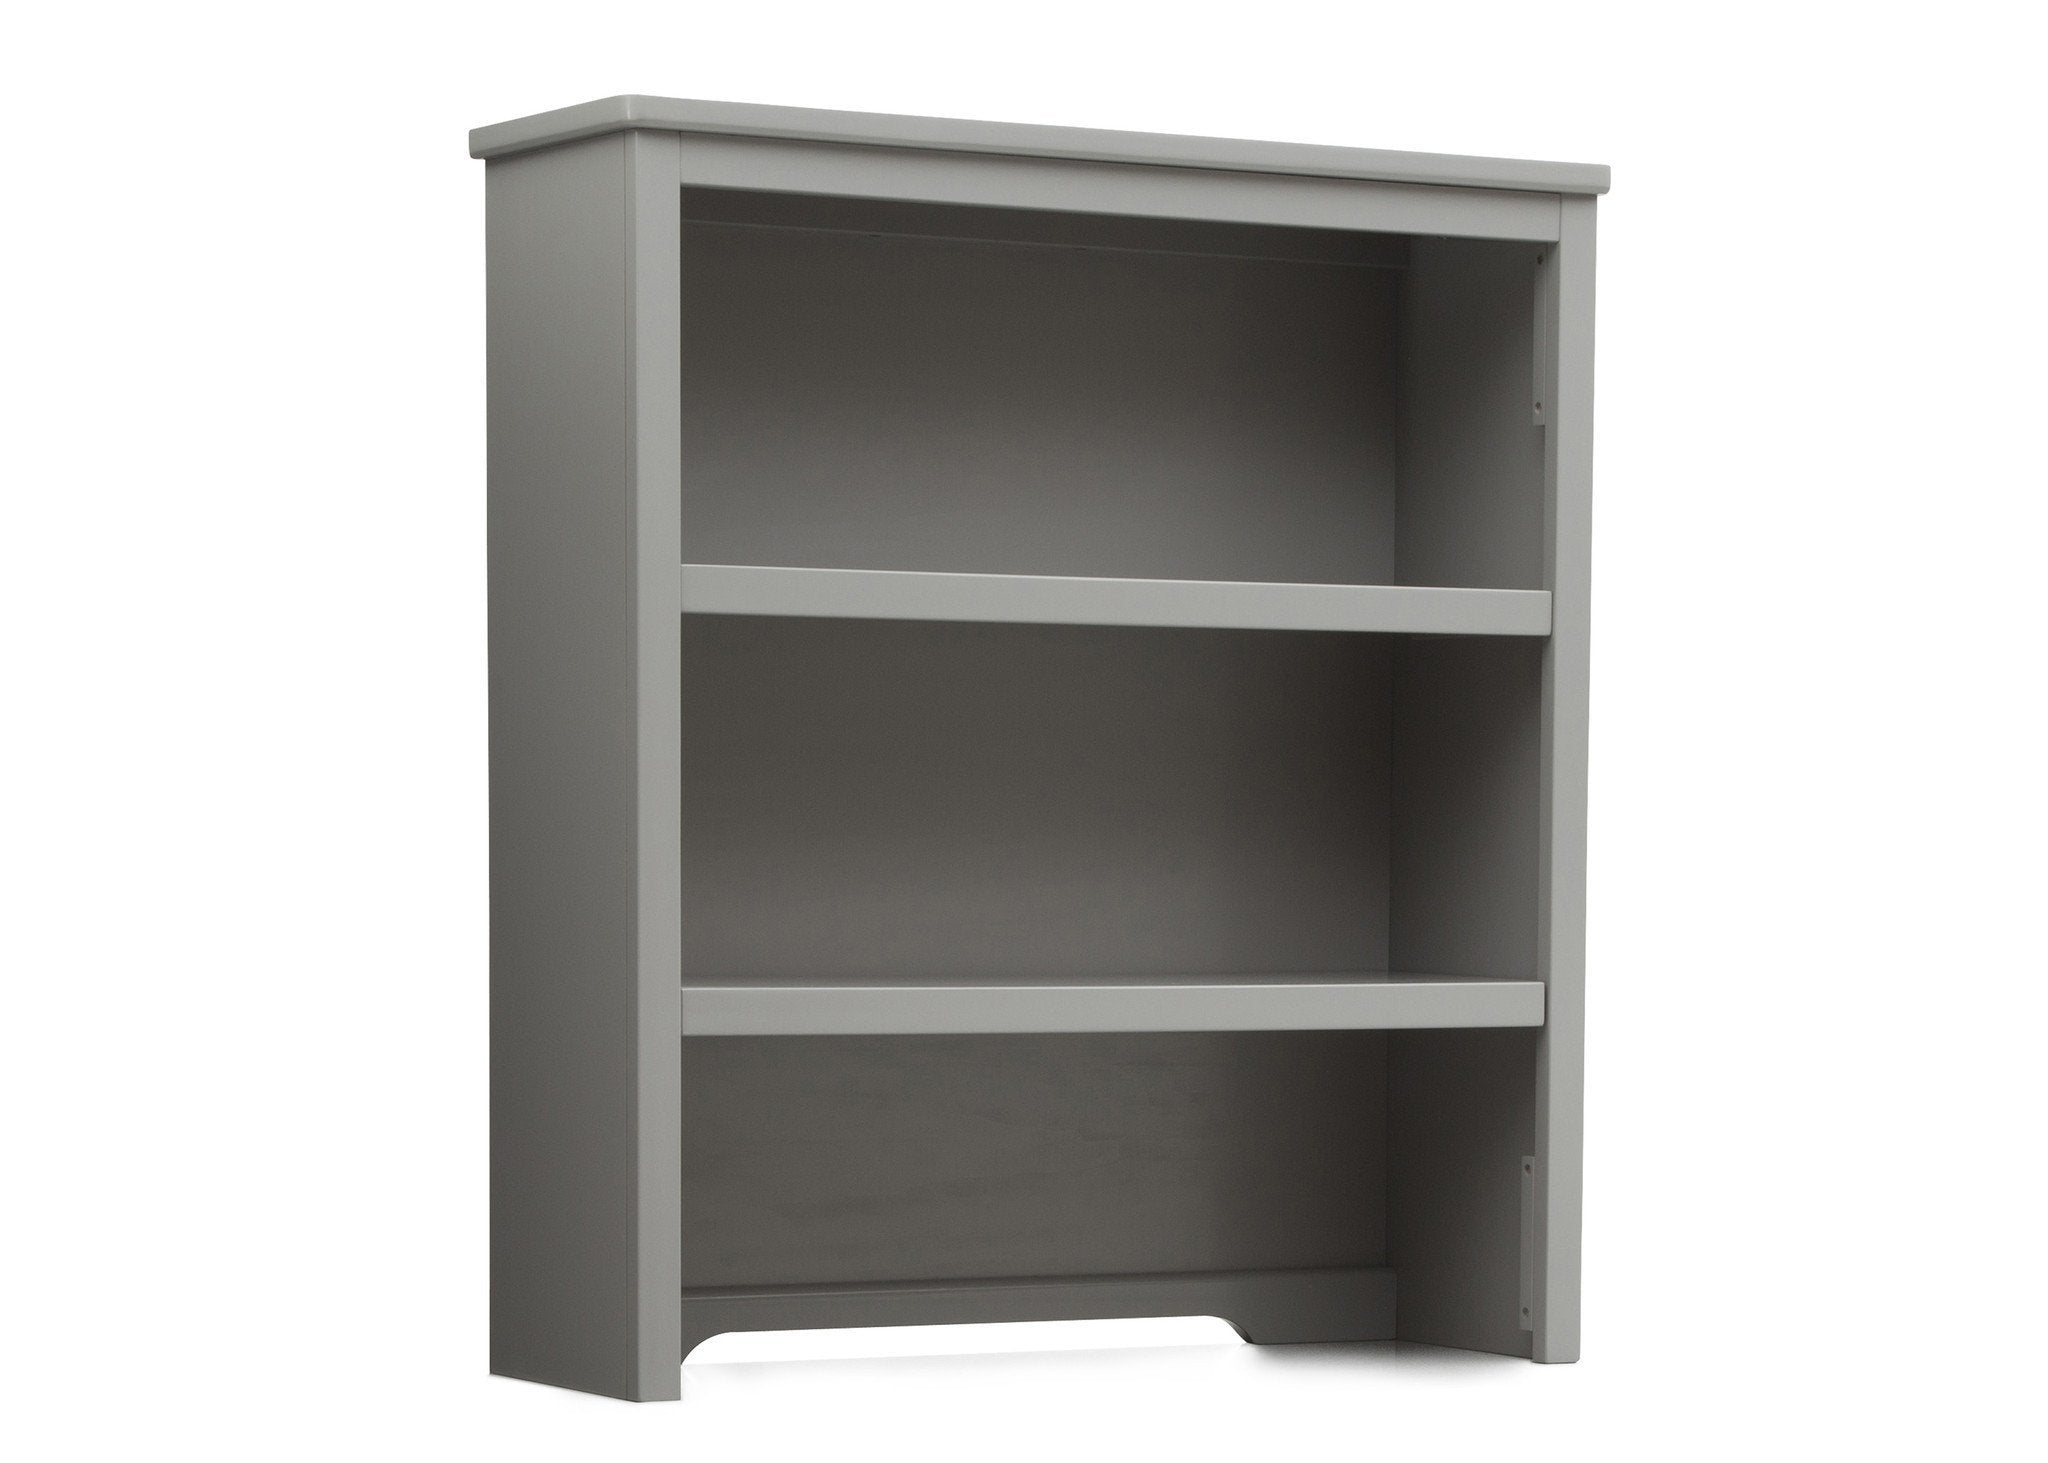 Delta Children Grey (026) Epic Bookcase/Hutch Side View a2a